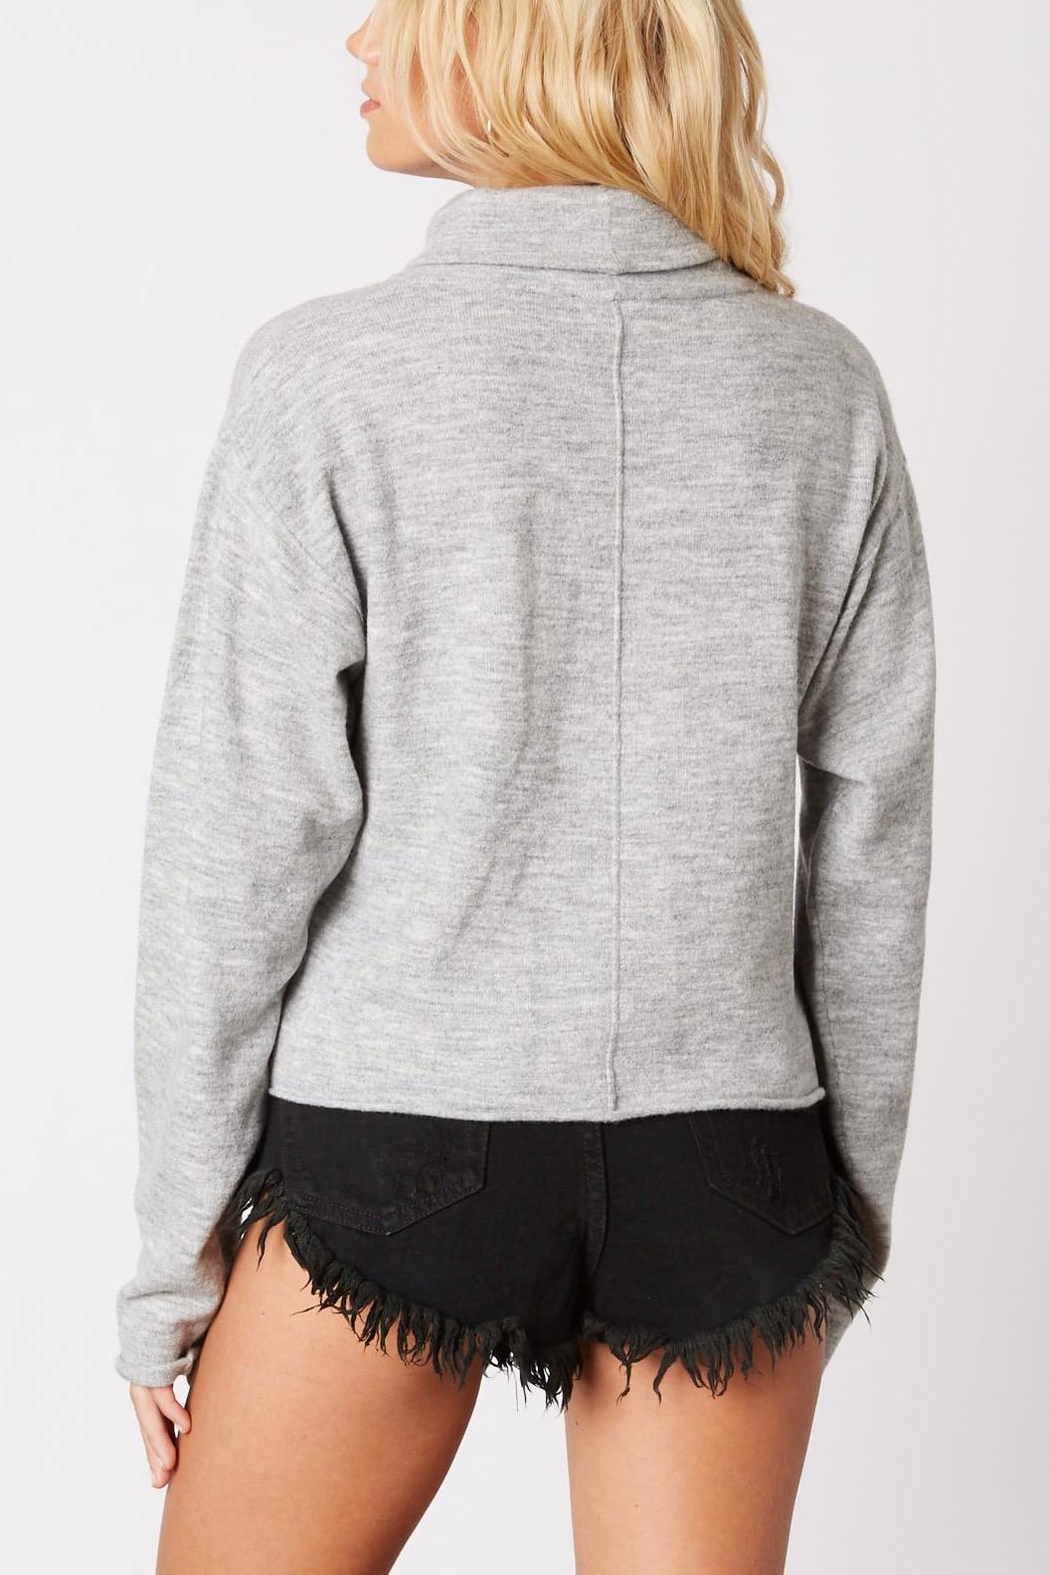 Cotton Candy Cropped Turtleneck Sweater - Back Cropped Image